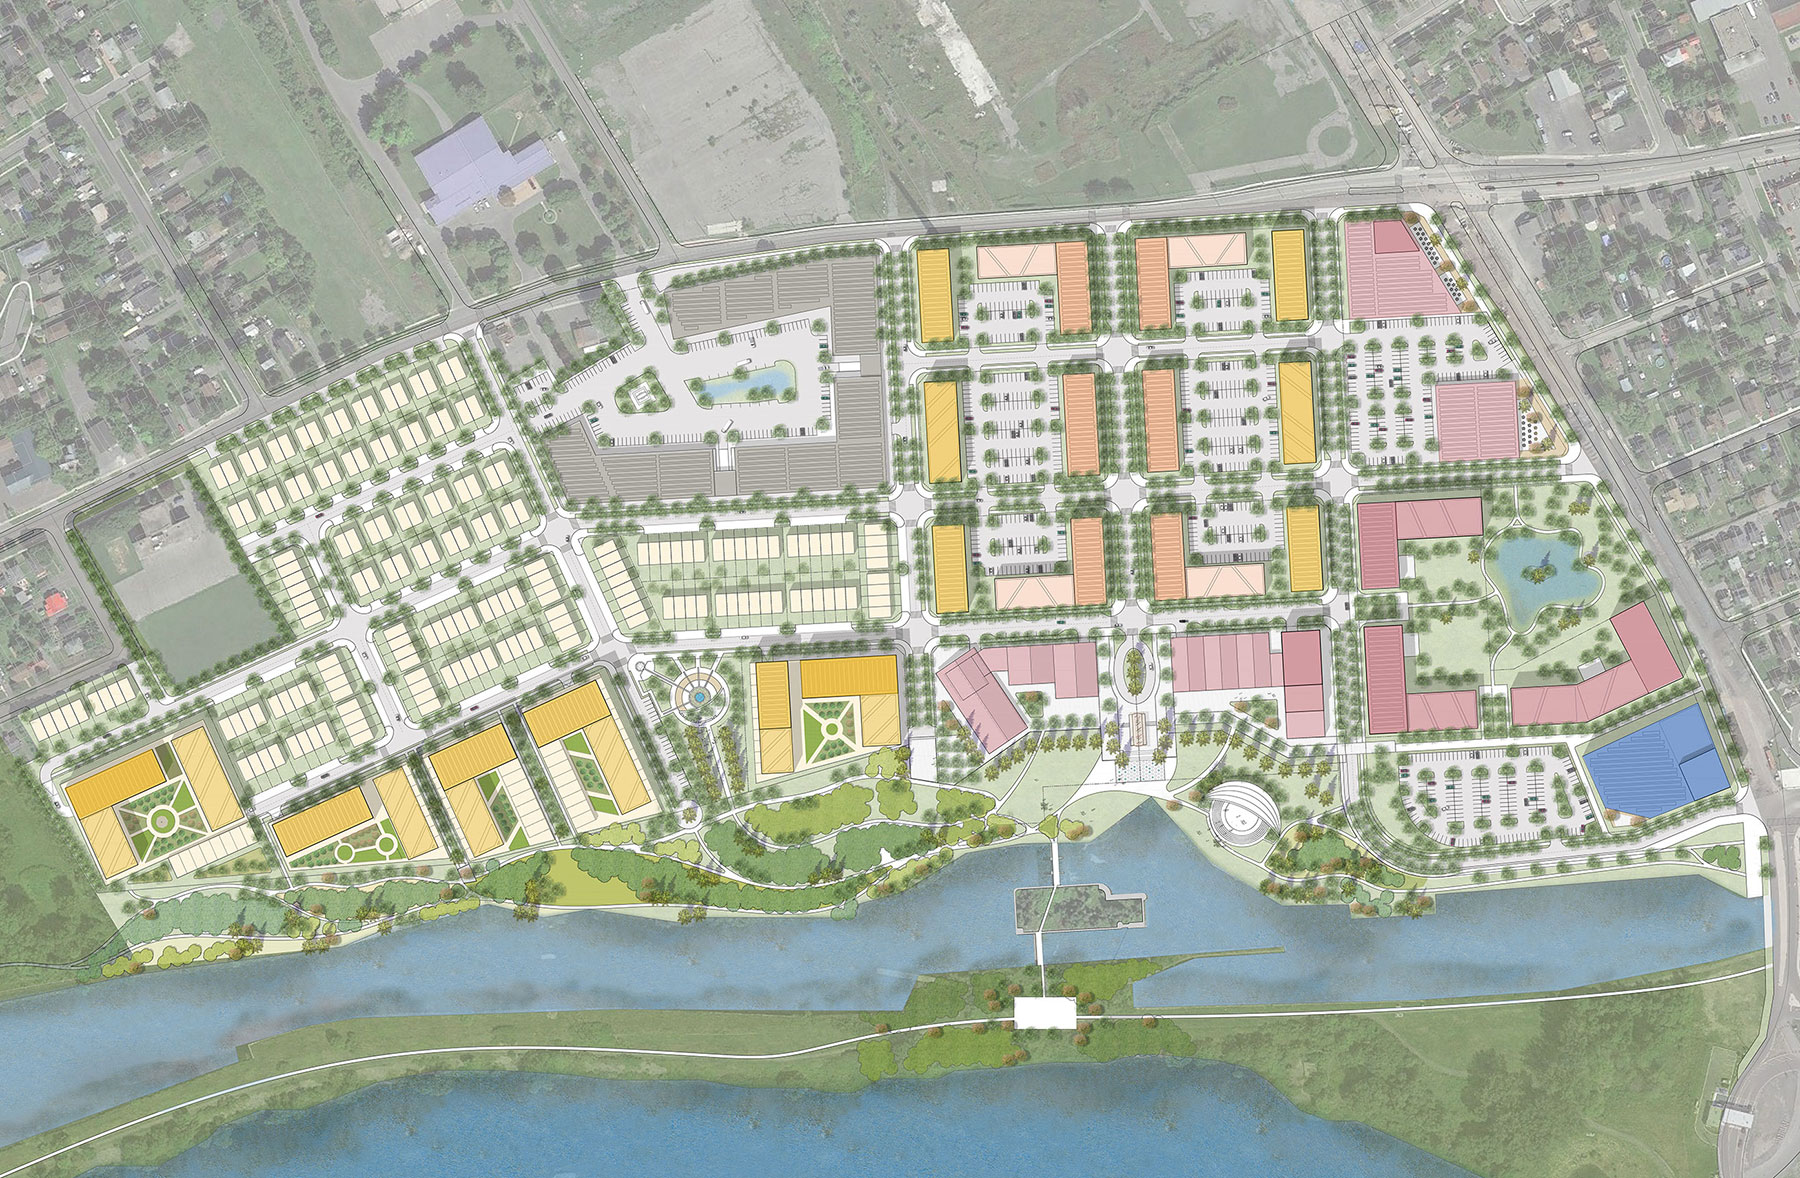 Proposed site plan of development along Cornwall Canal.